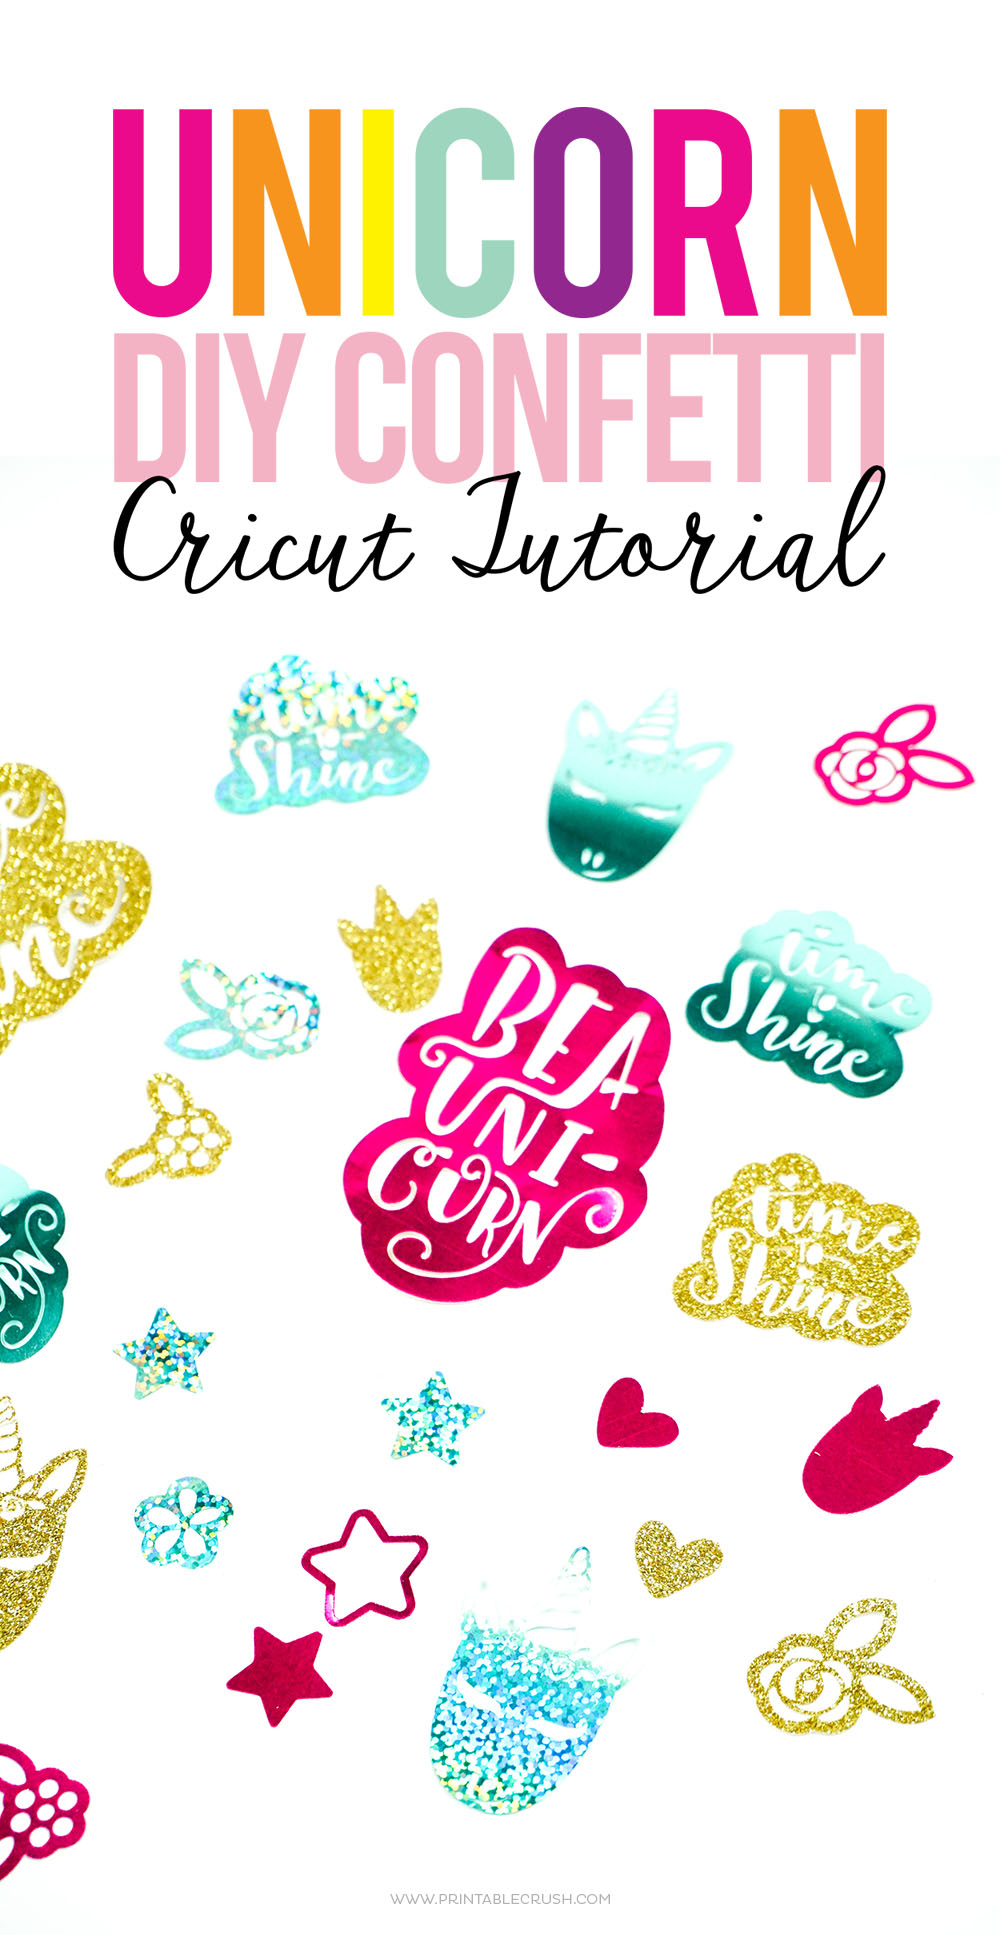 This fun Unicorn DIY Confetti Cricut Tutorial is super easy, and you will be amazed at how intricate the Maker can cut on the Cricut party foil!